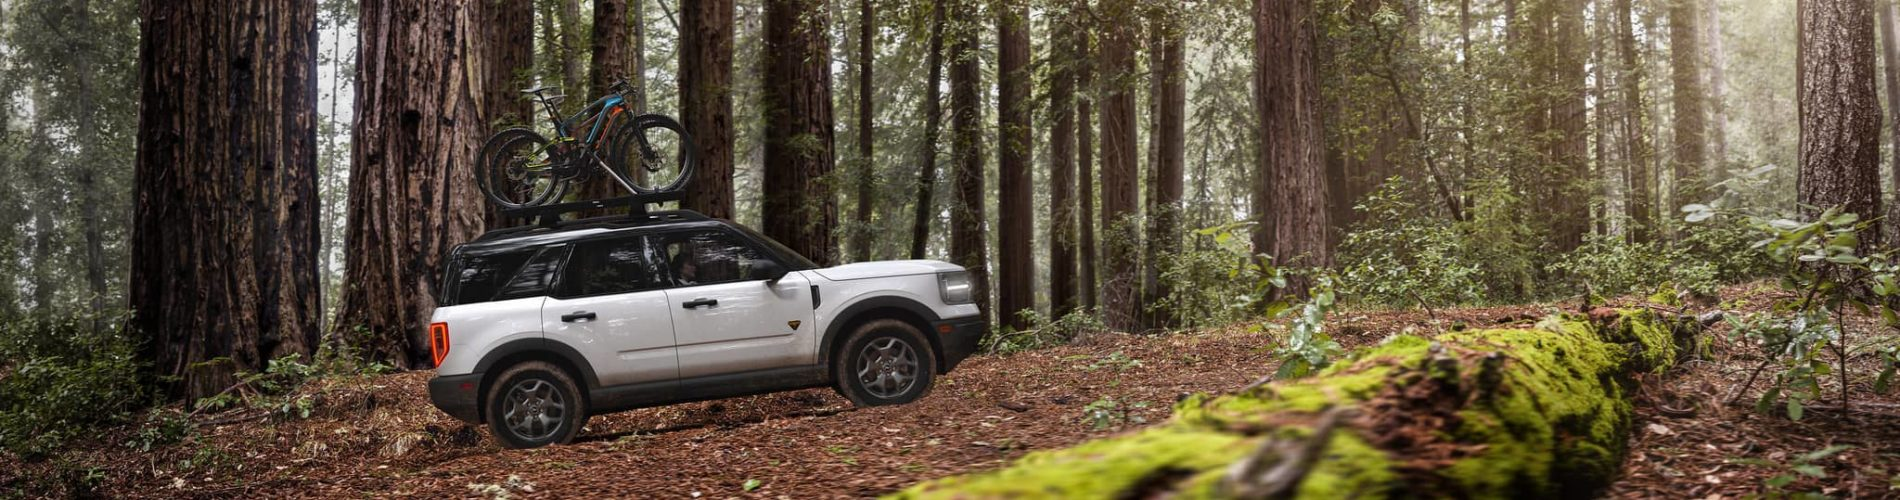 The Bronco + Filson Wildland Fire Rig | Shults Ford